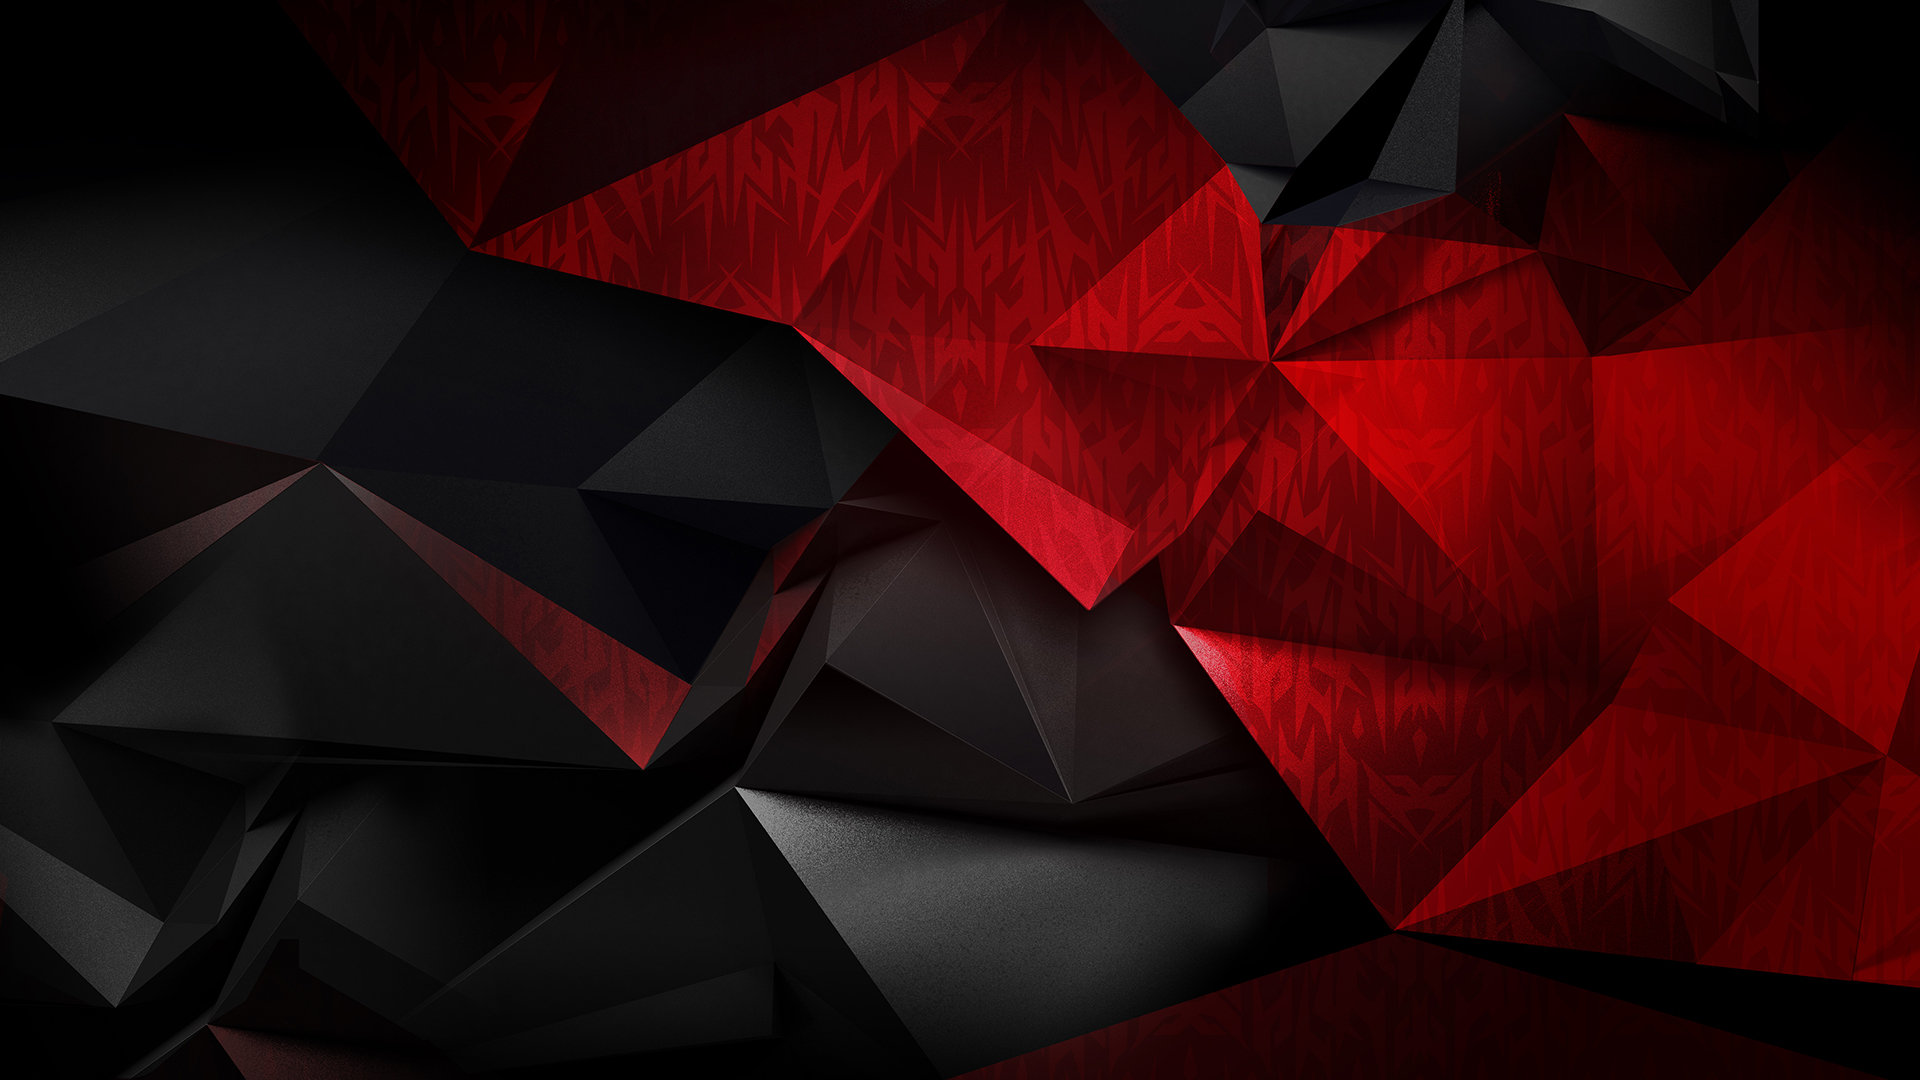 Acer Predator 15 Wallpaper Acer Community